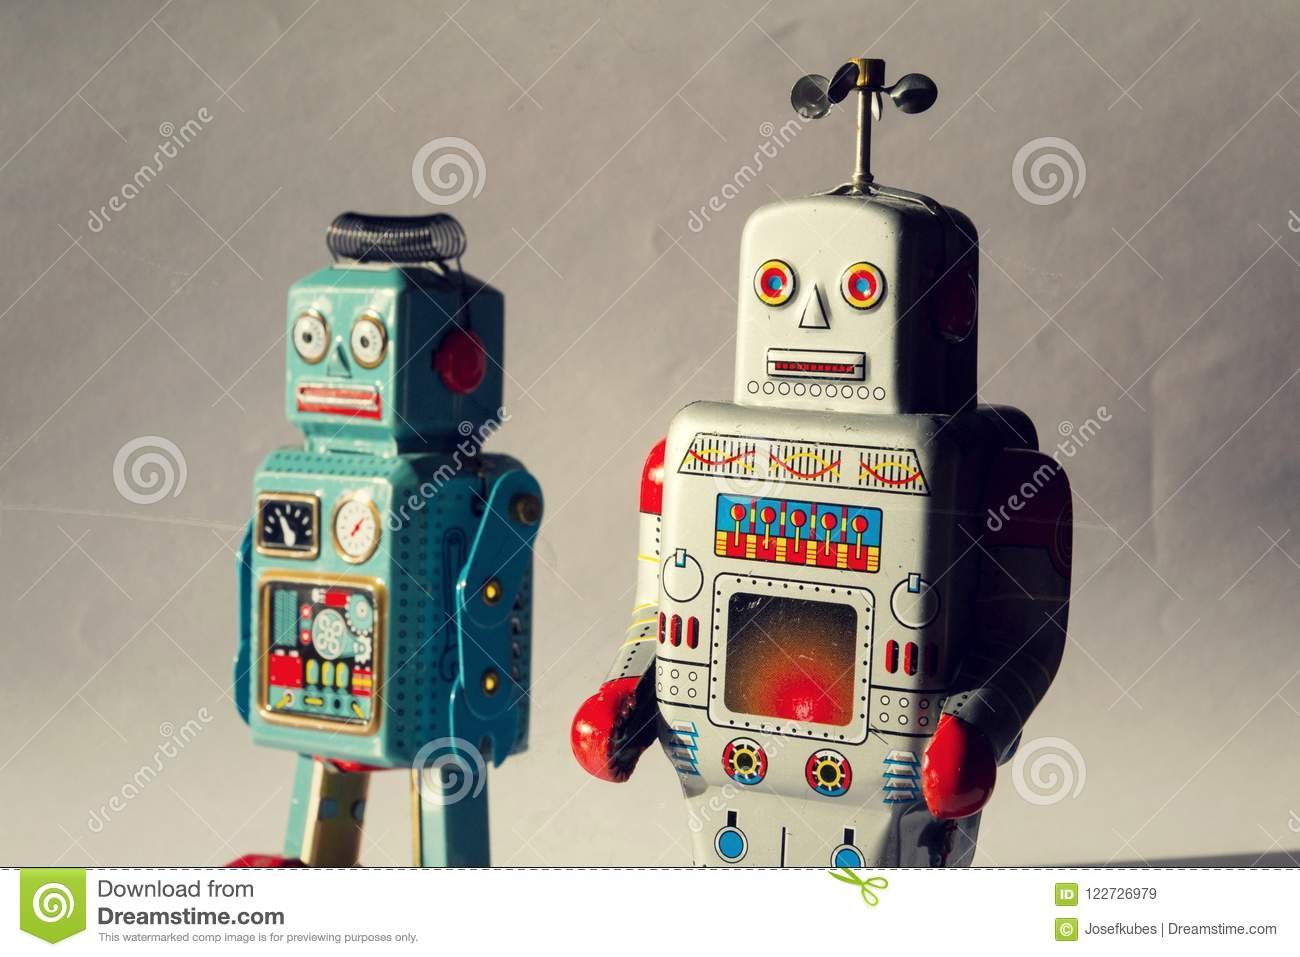 Two angry vintage tin toy robots, artificial intelligence, robotic drone delivery, machine learning concept